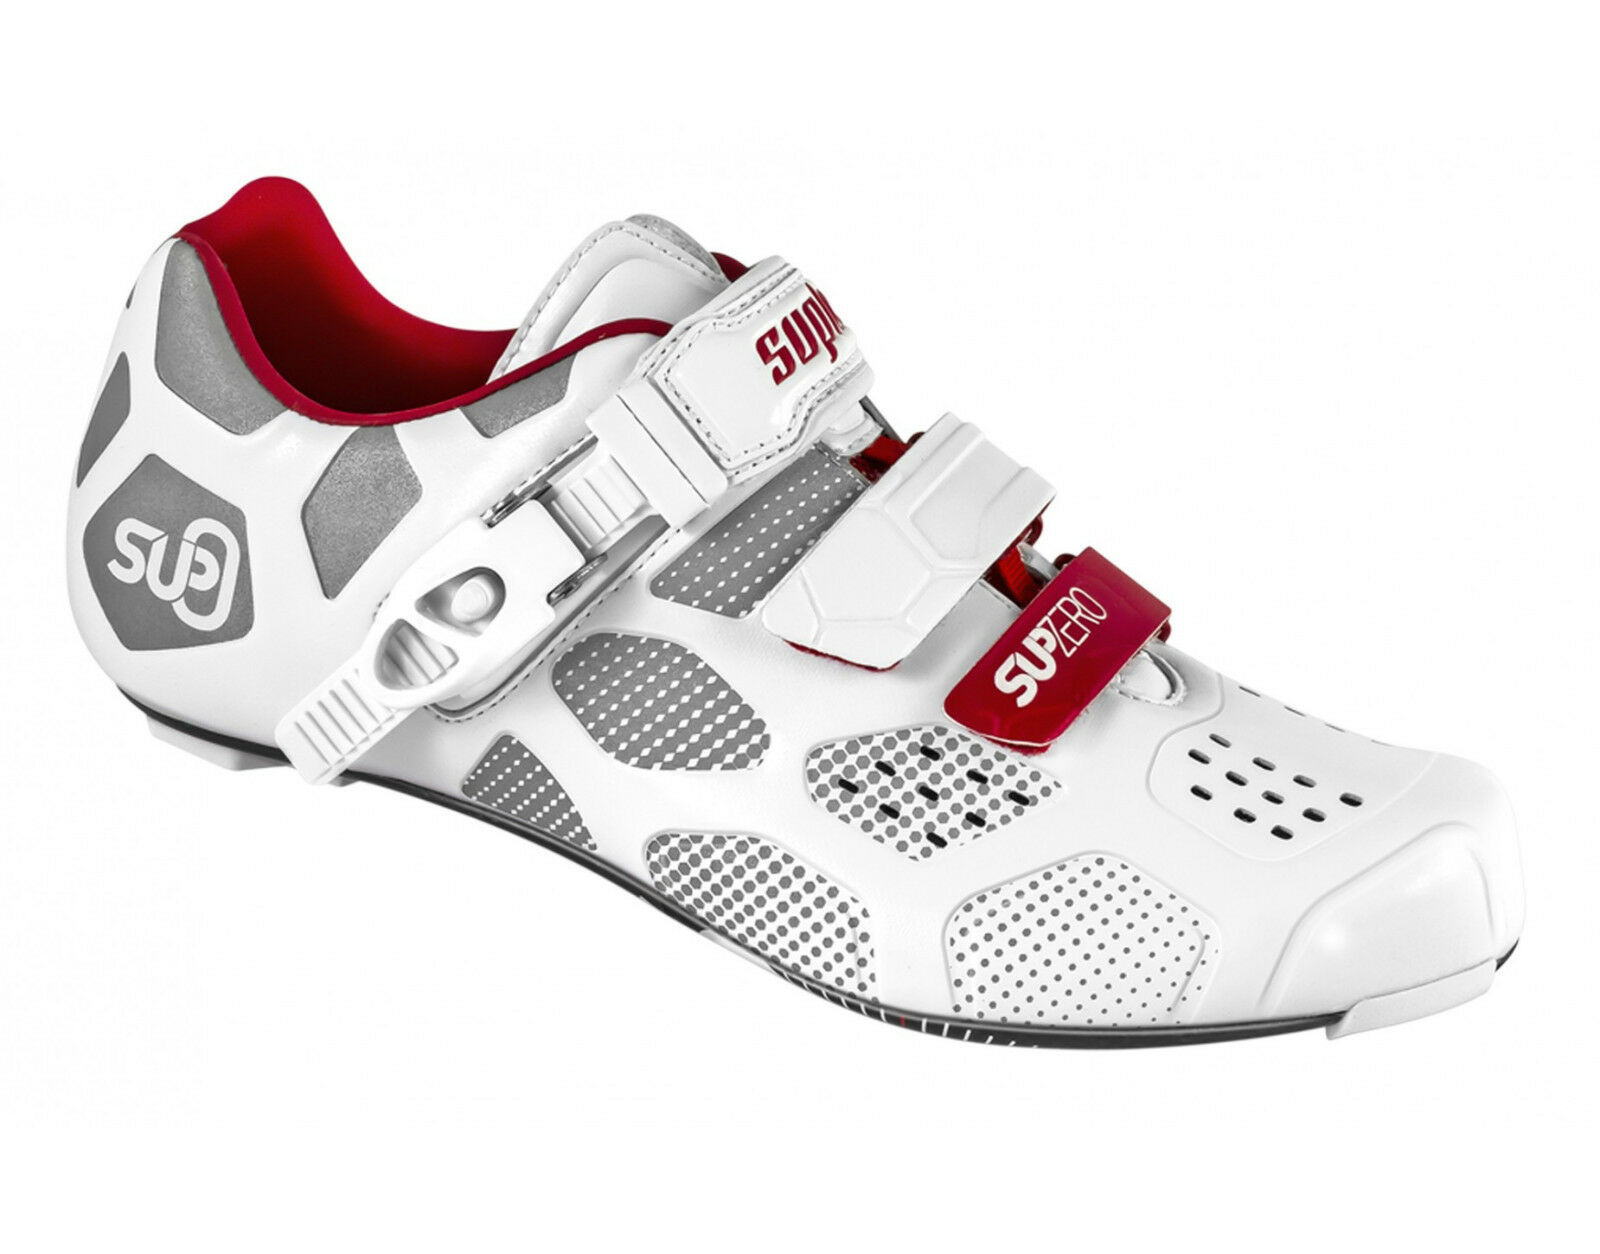 Suplest Supzero Carbon Racing Cycling Road shoes White Look 3-bolt Read listing